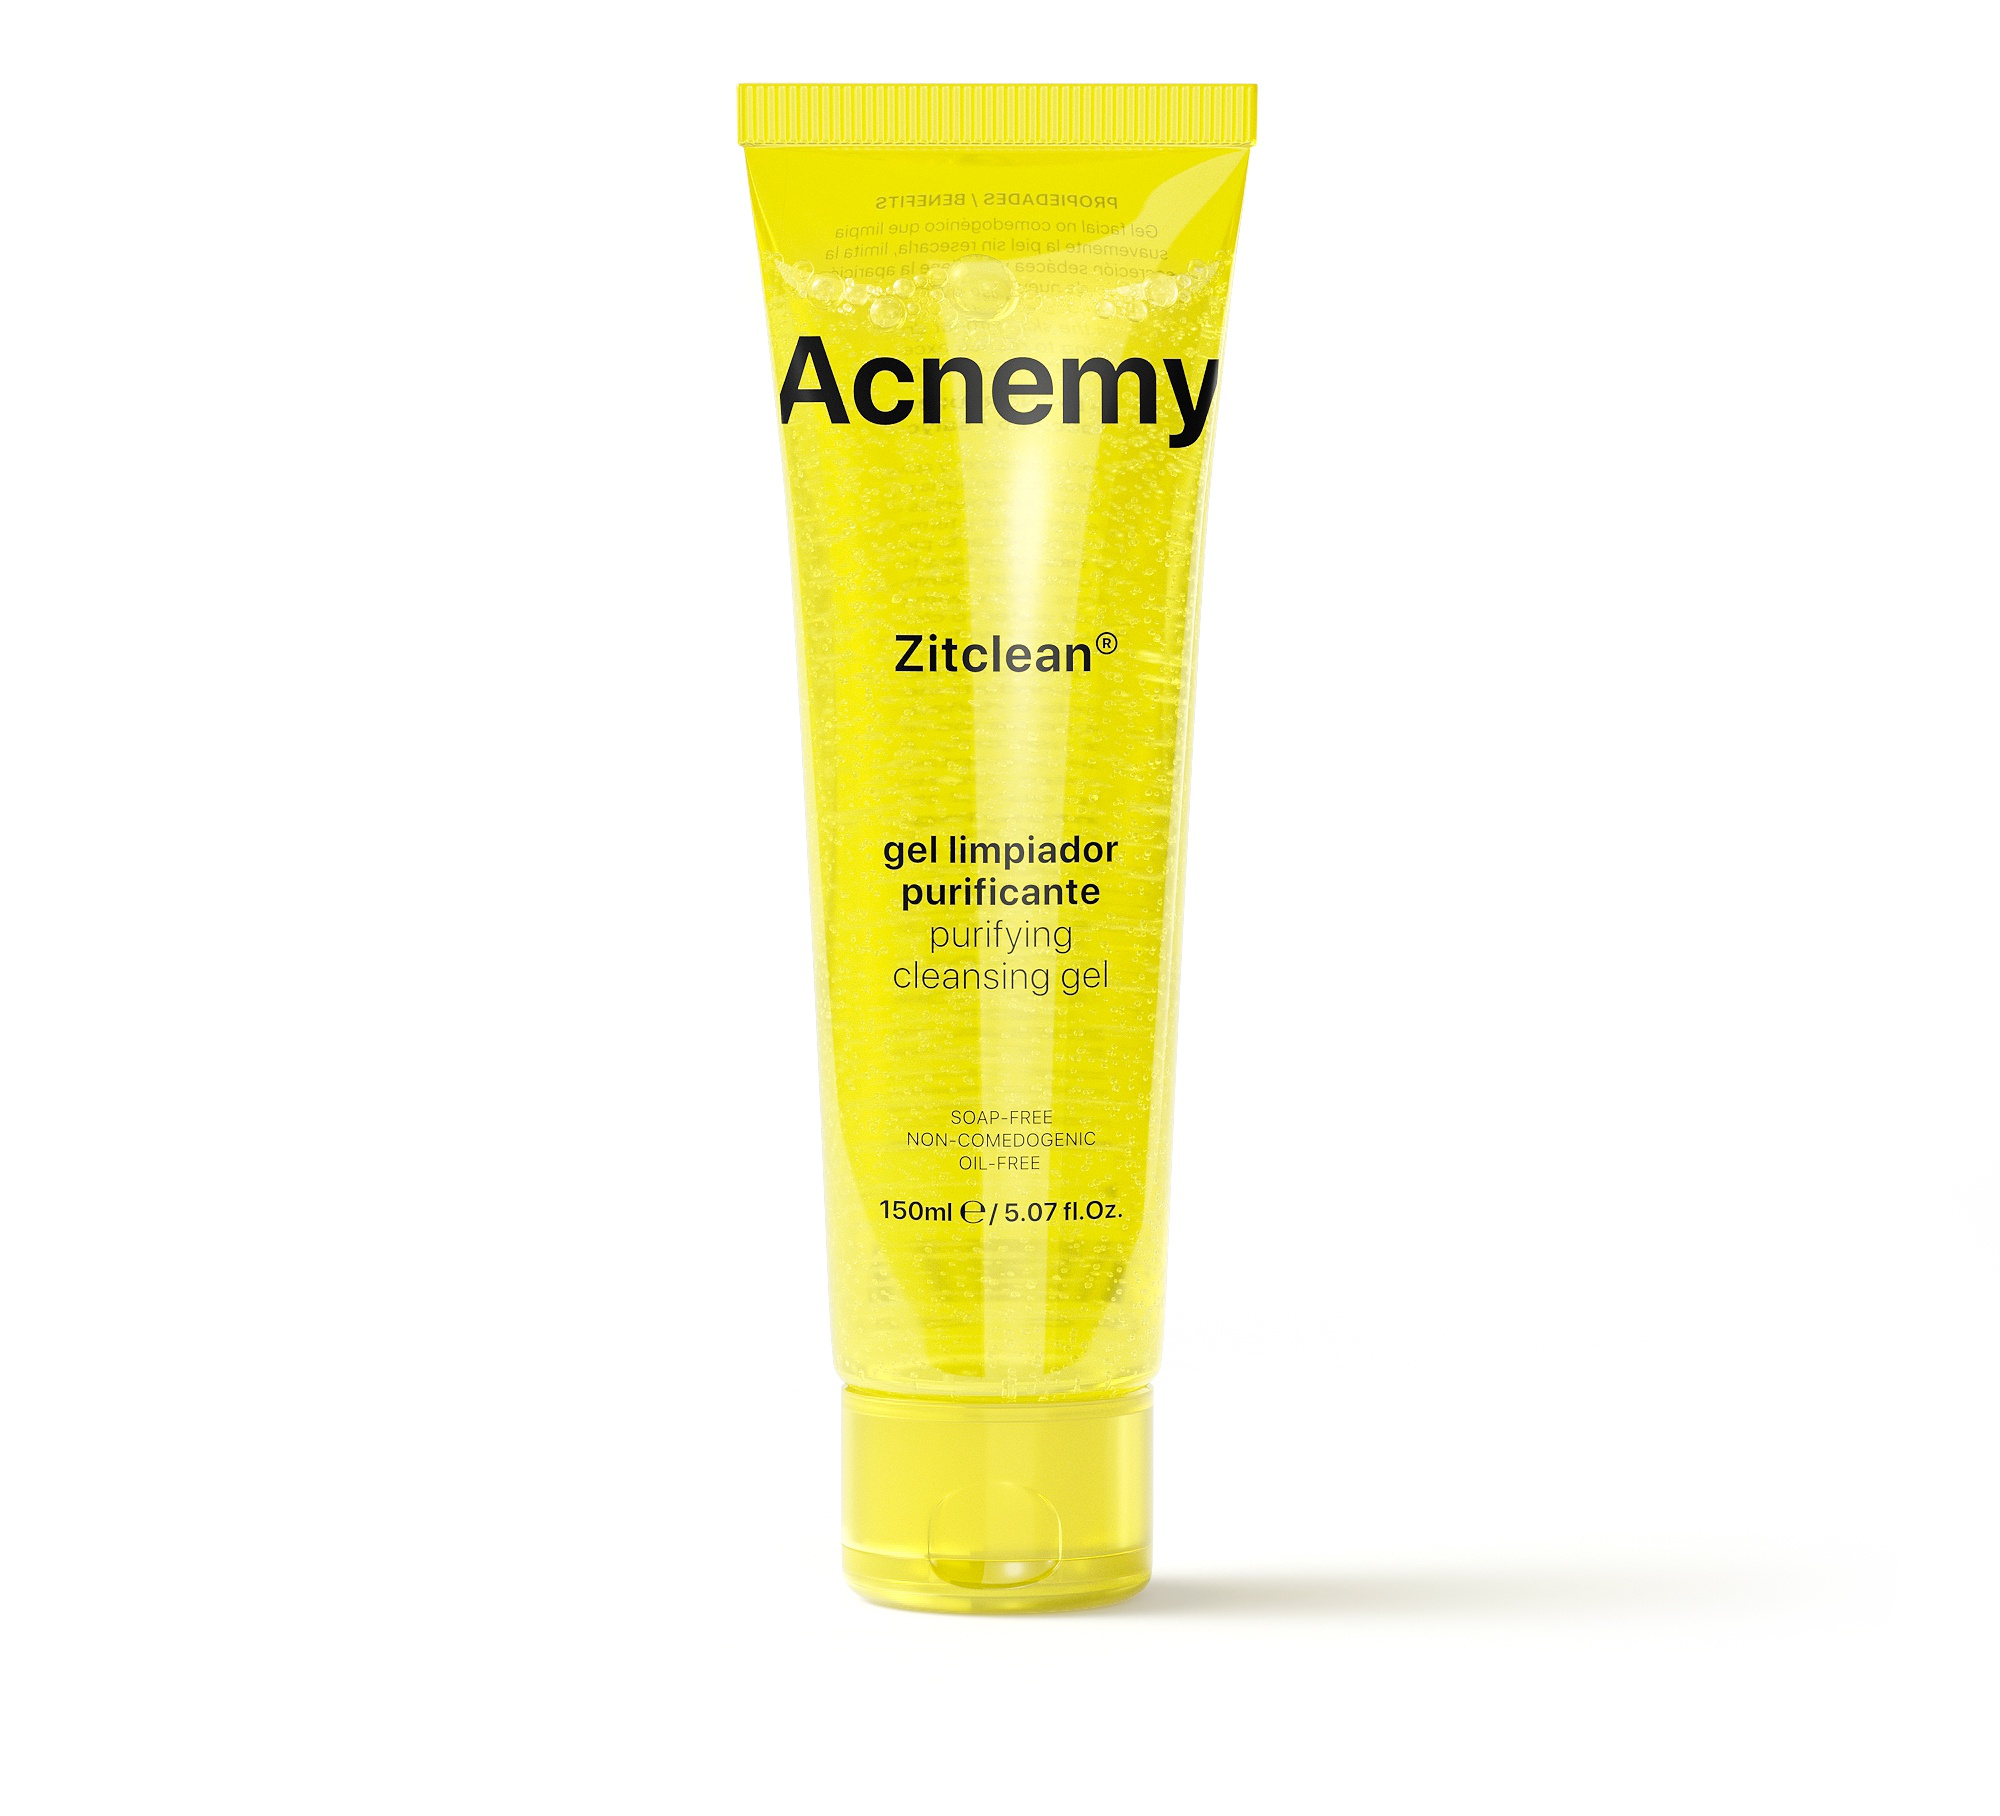 Acnemy Zitclean